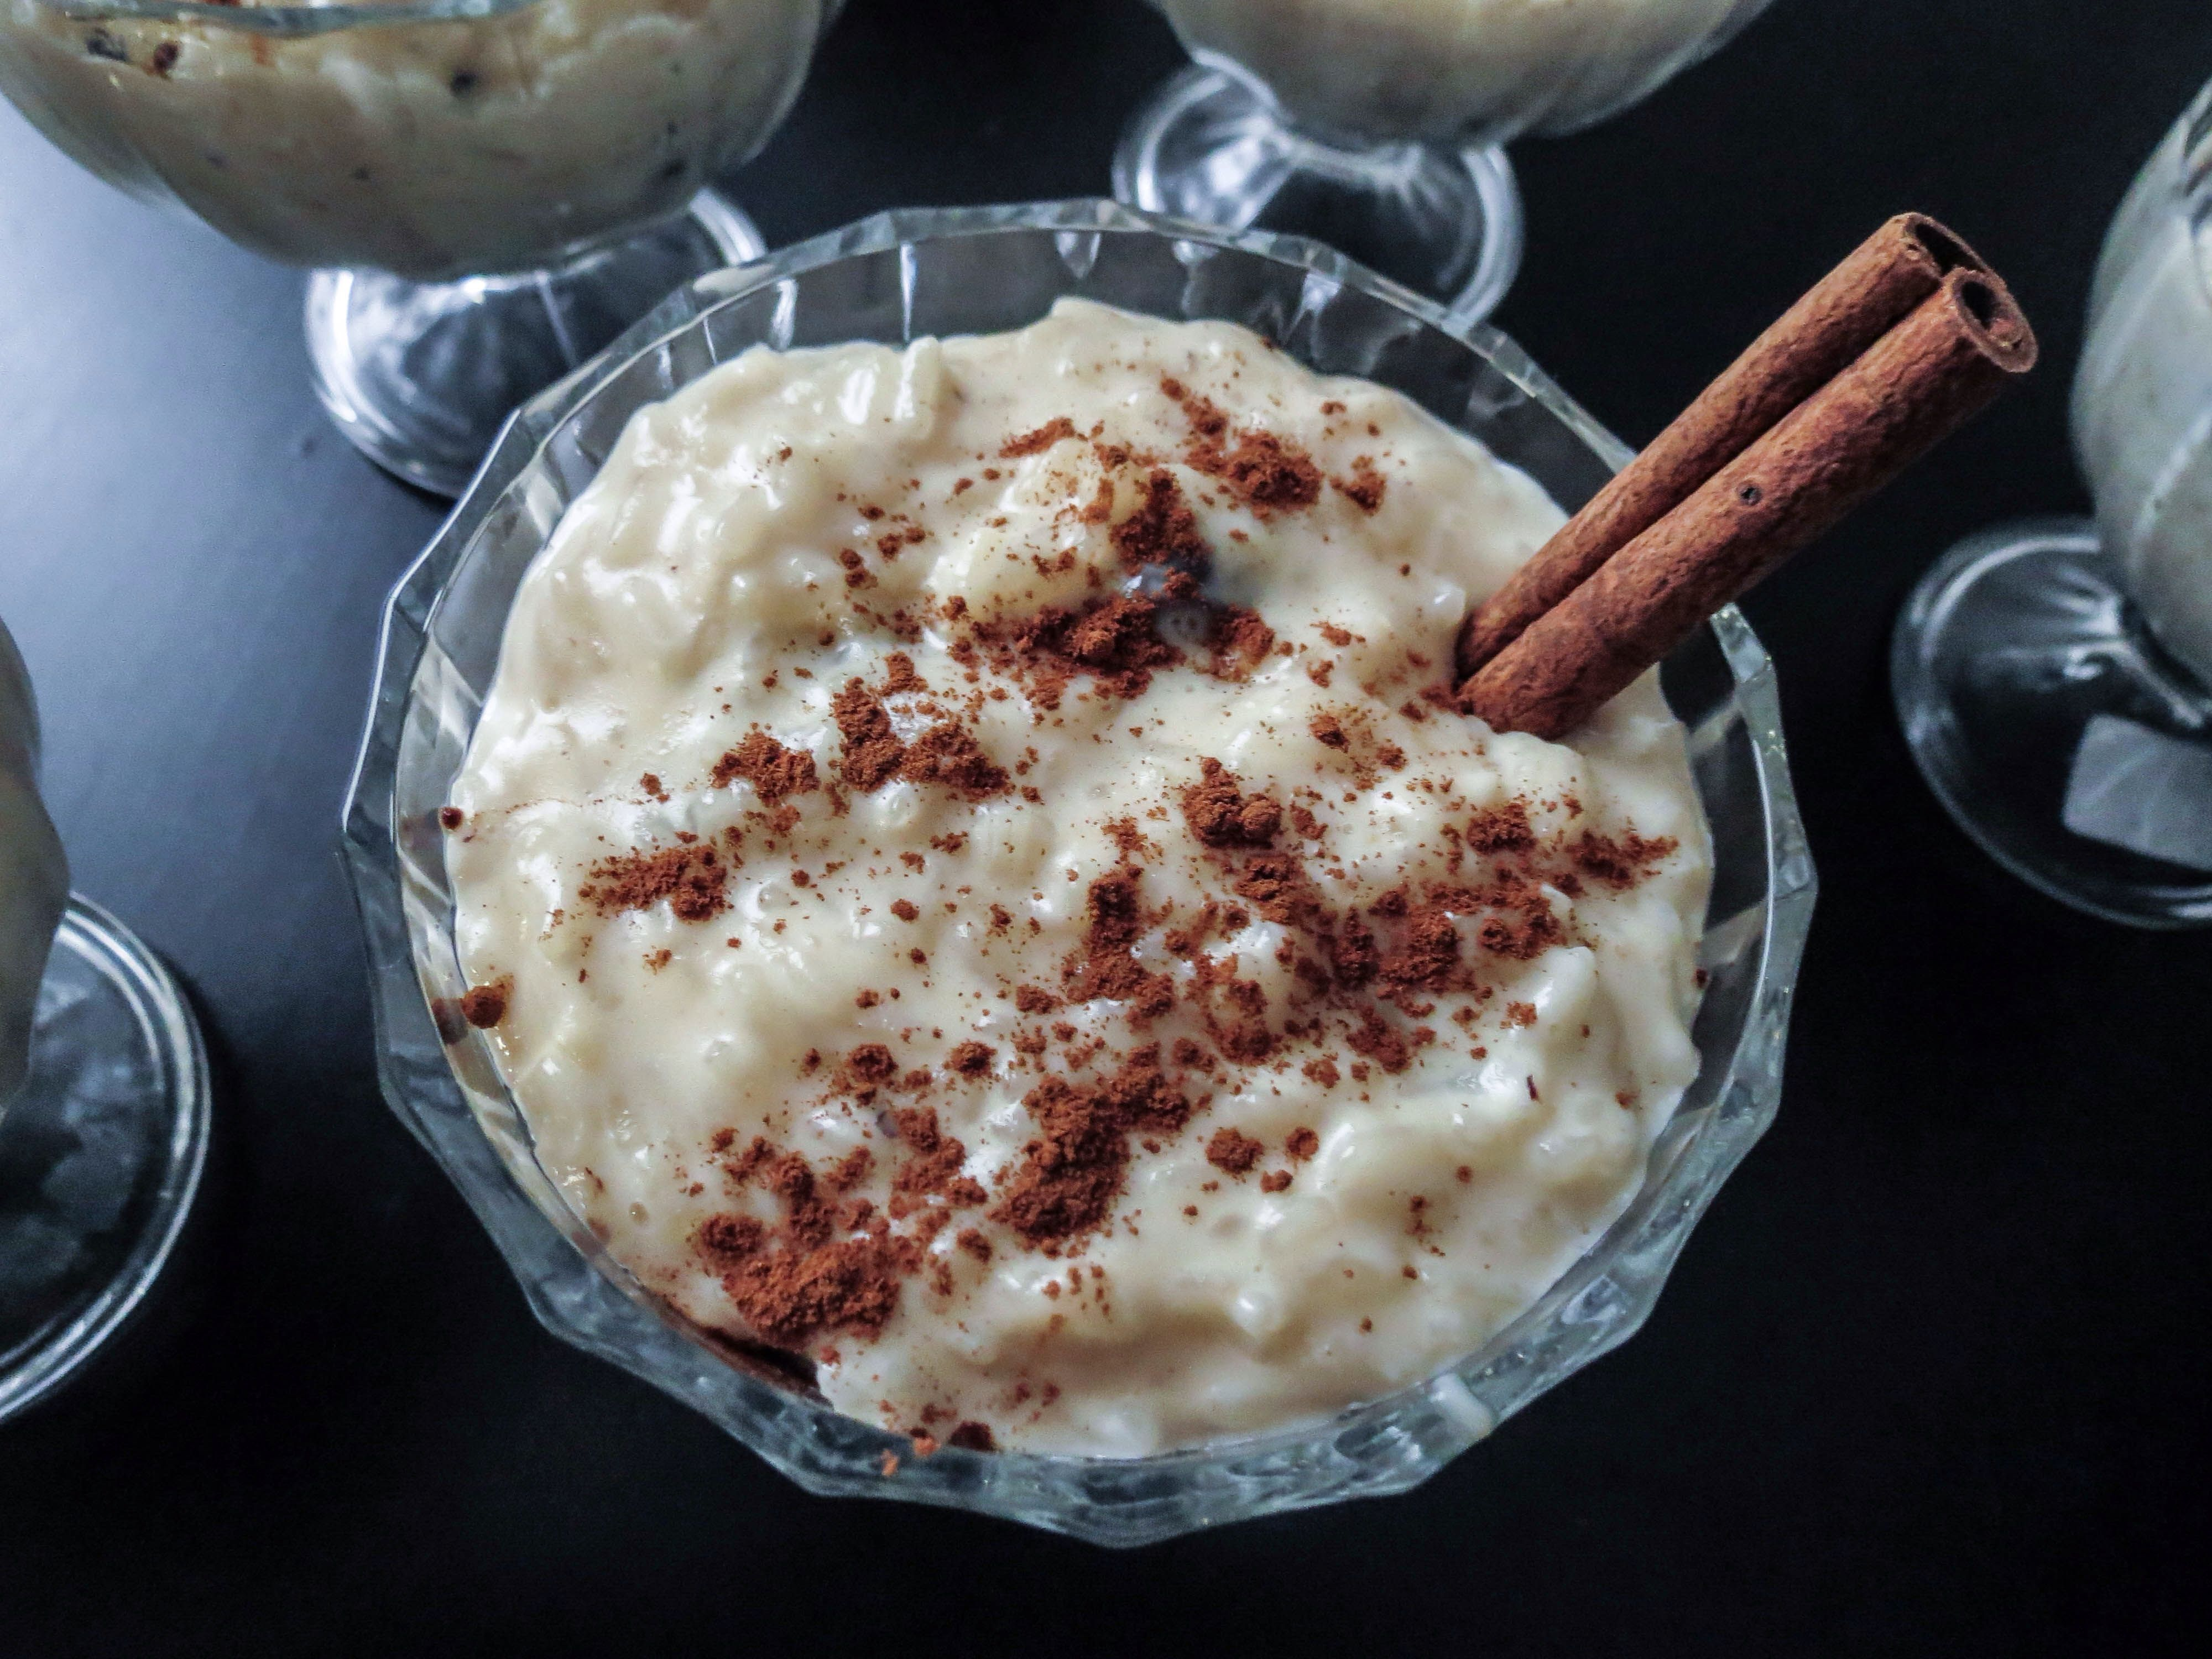 Costa Rican Rice Pudding Arroz Con Leche A Typical Costa Rican Dessert Sweet Delicious And